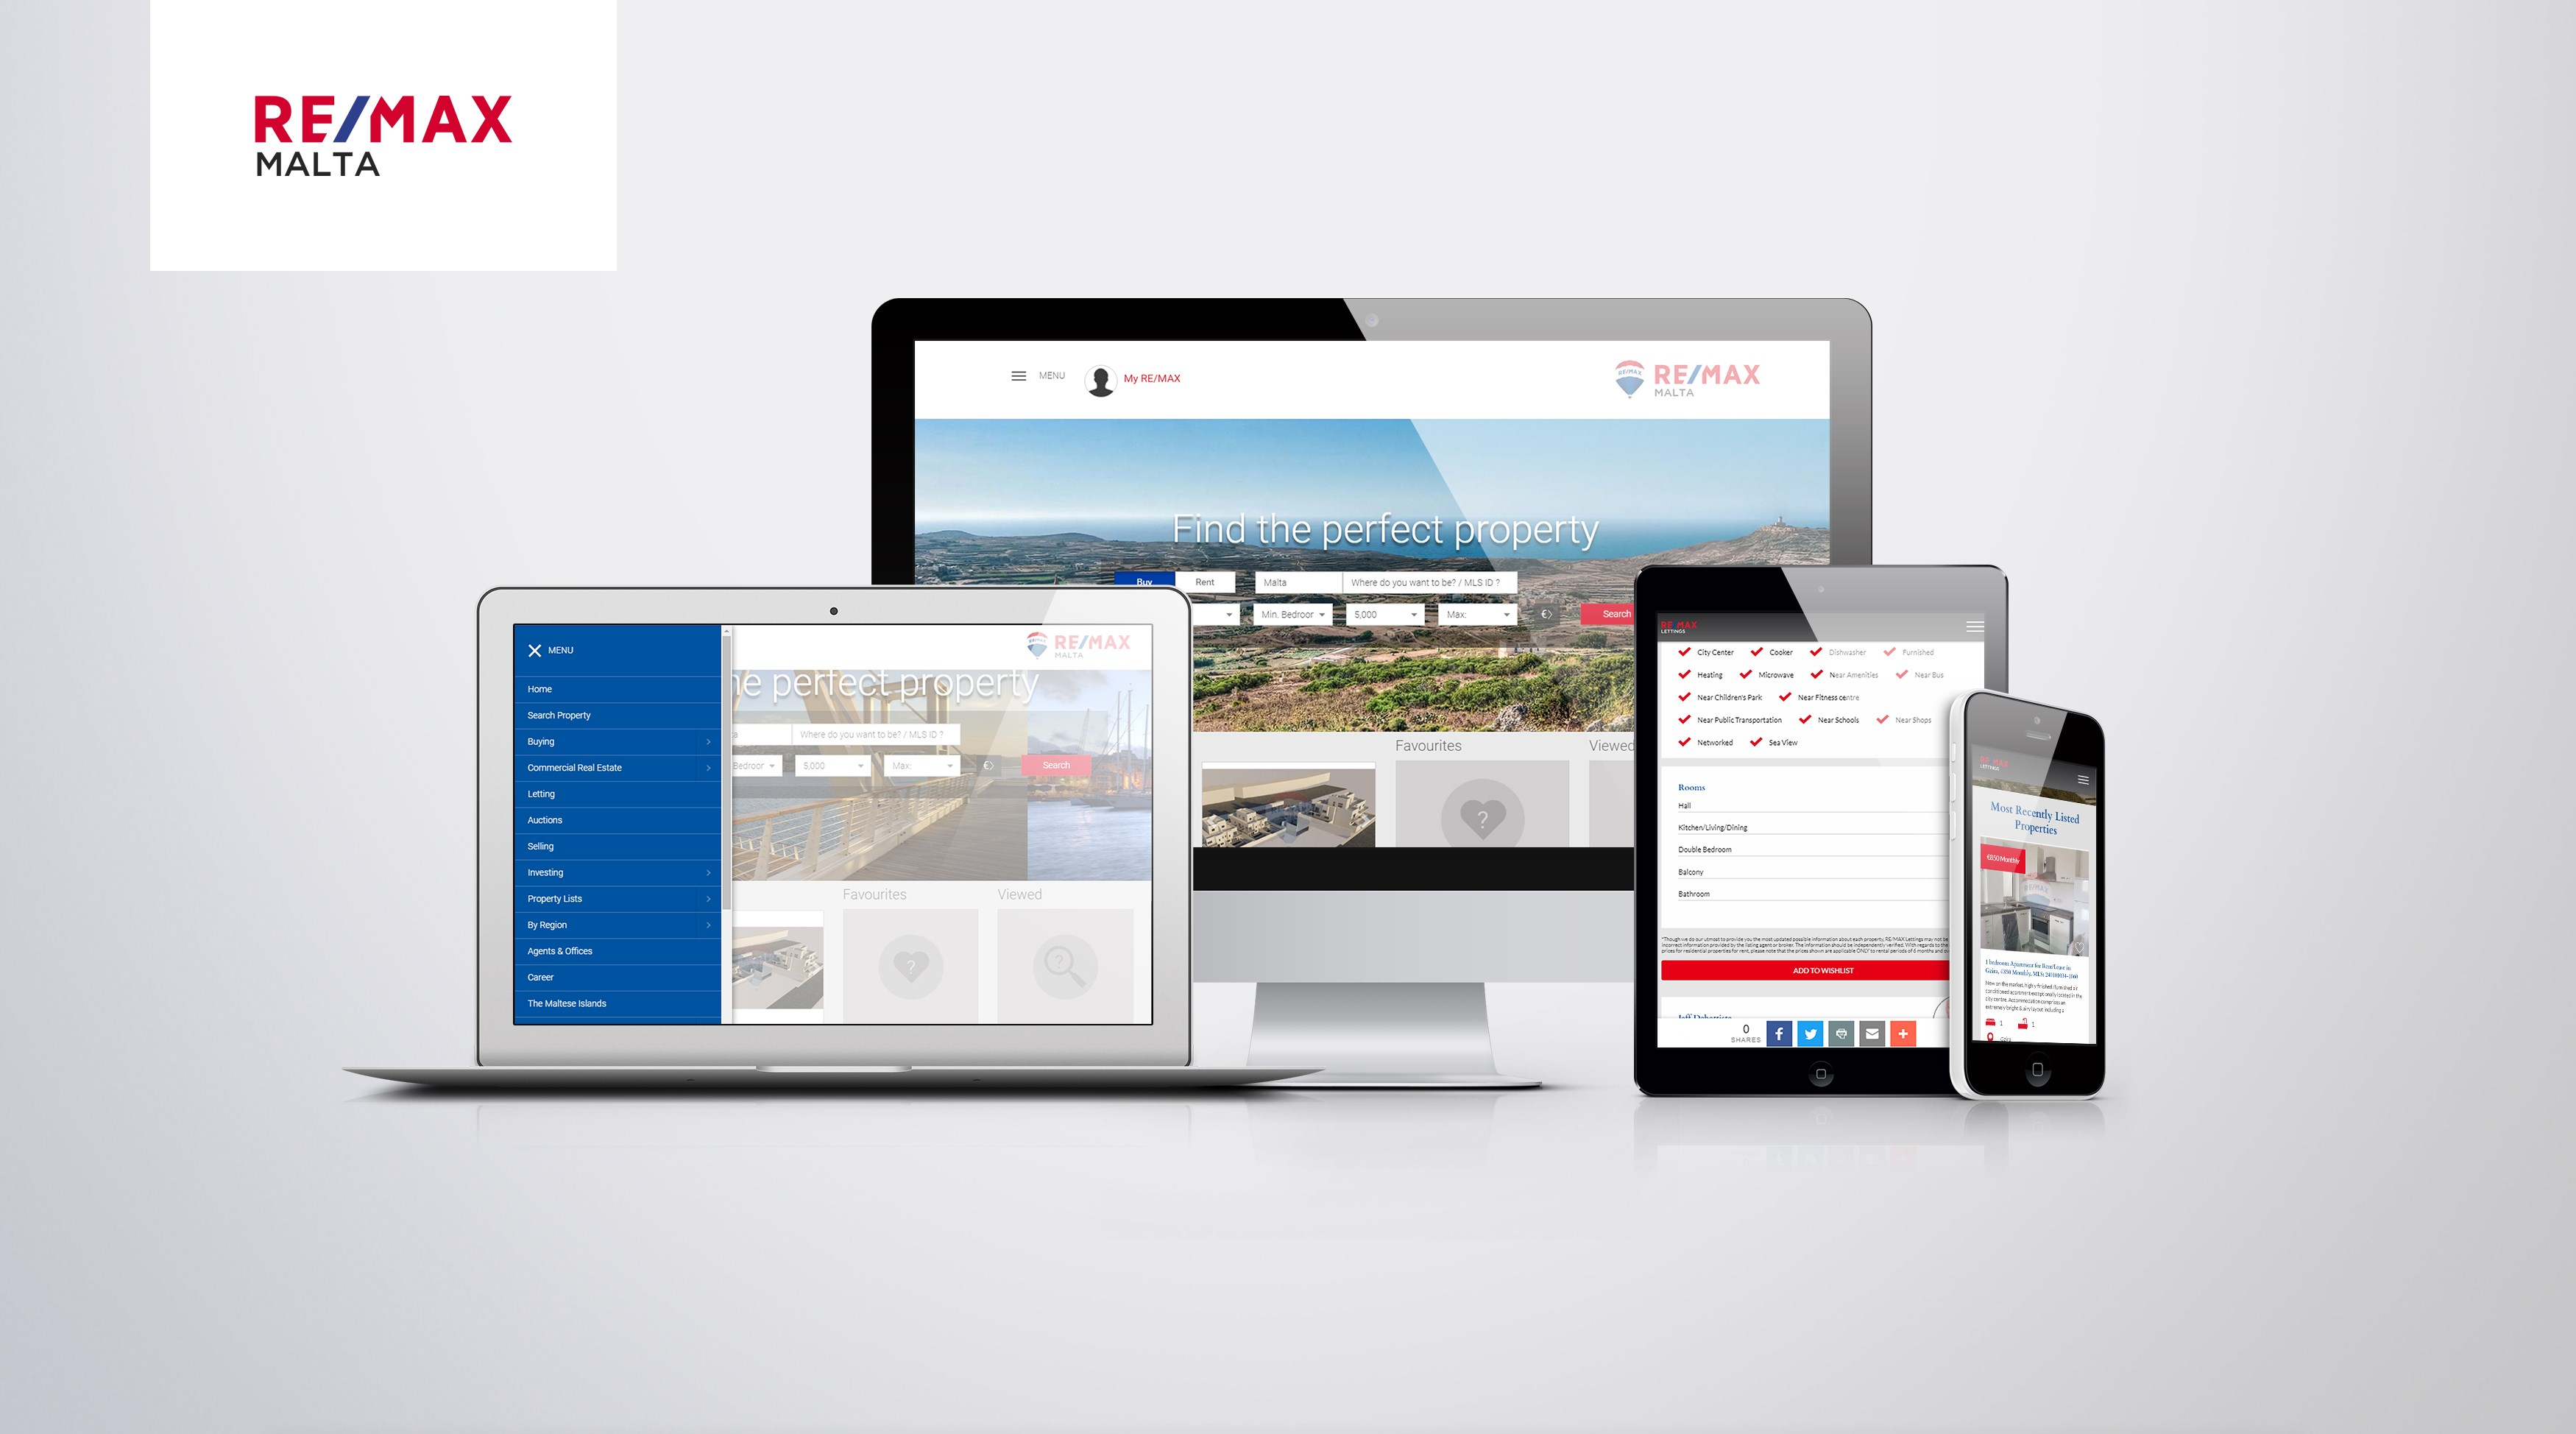 Remax Malta - Web Design & Development / Web Hosting & Domain Names / System Integration & Migration / Custom Web Application Development / Support & Maintenance